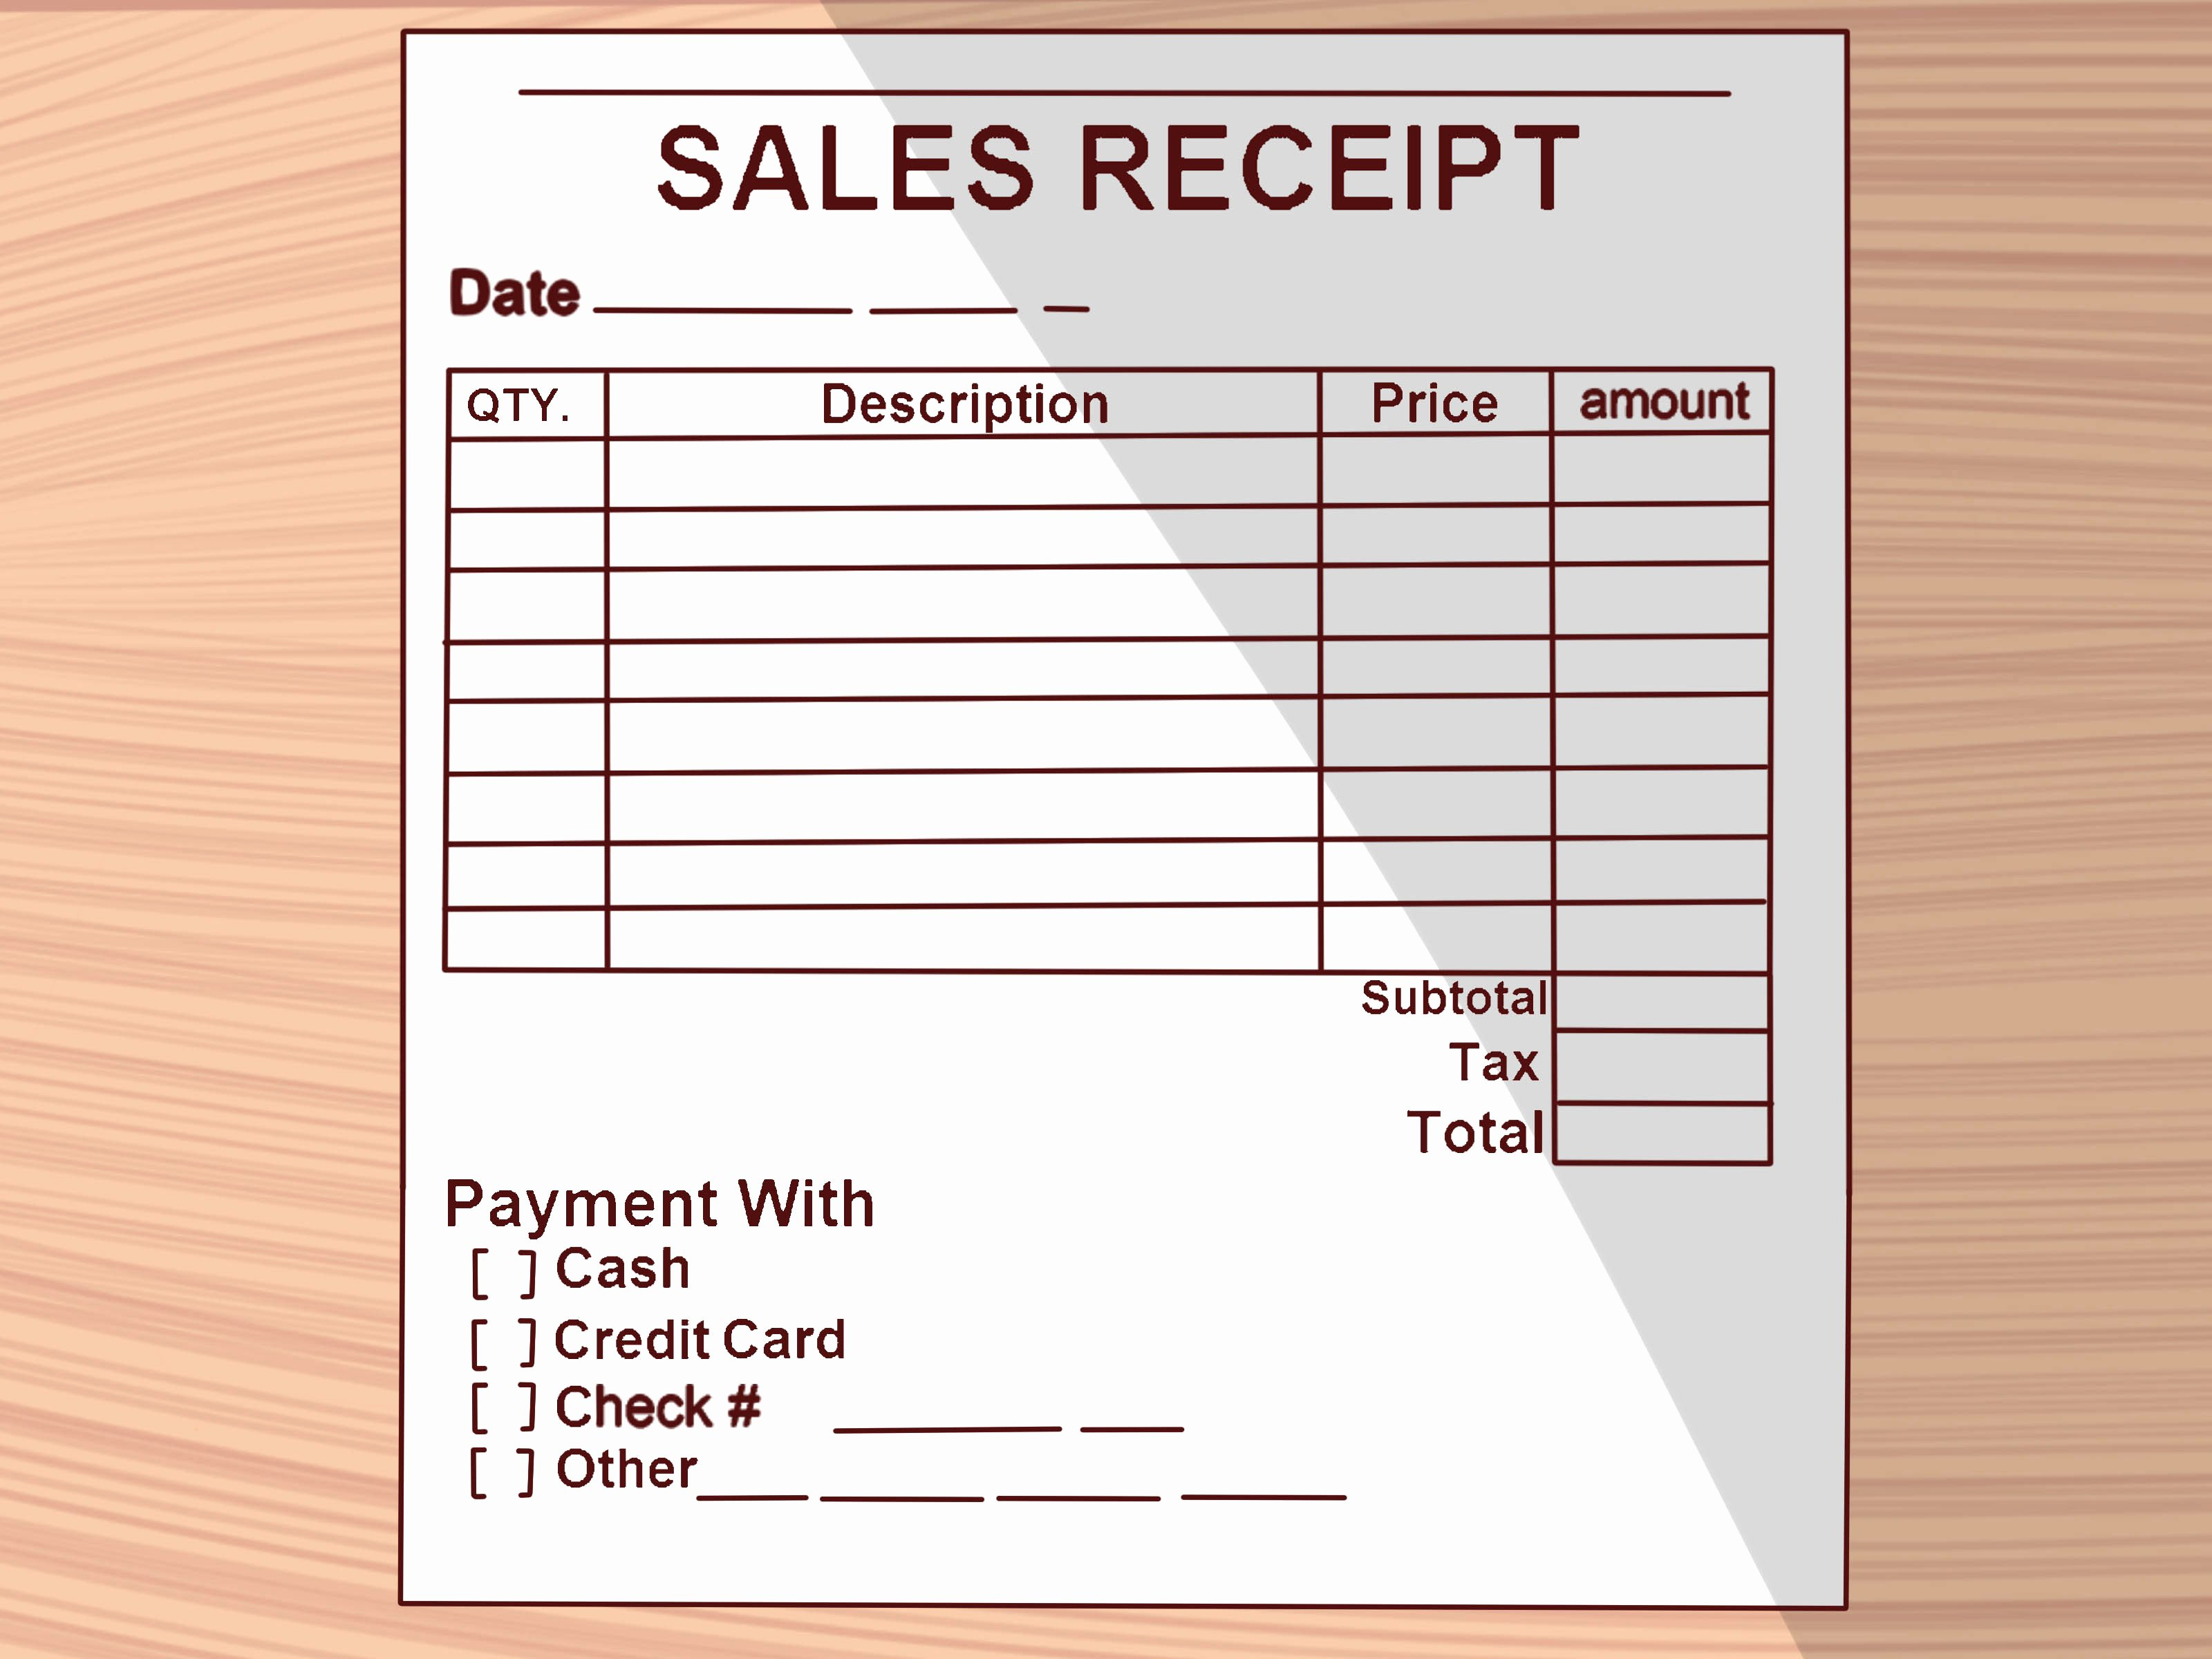 Receipt Of Sale Template Beautiful How to Write A Receipt 9 Steps with Wikihow